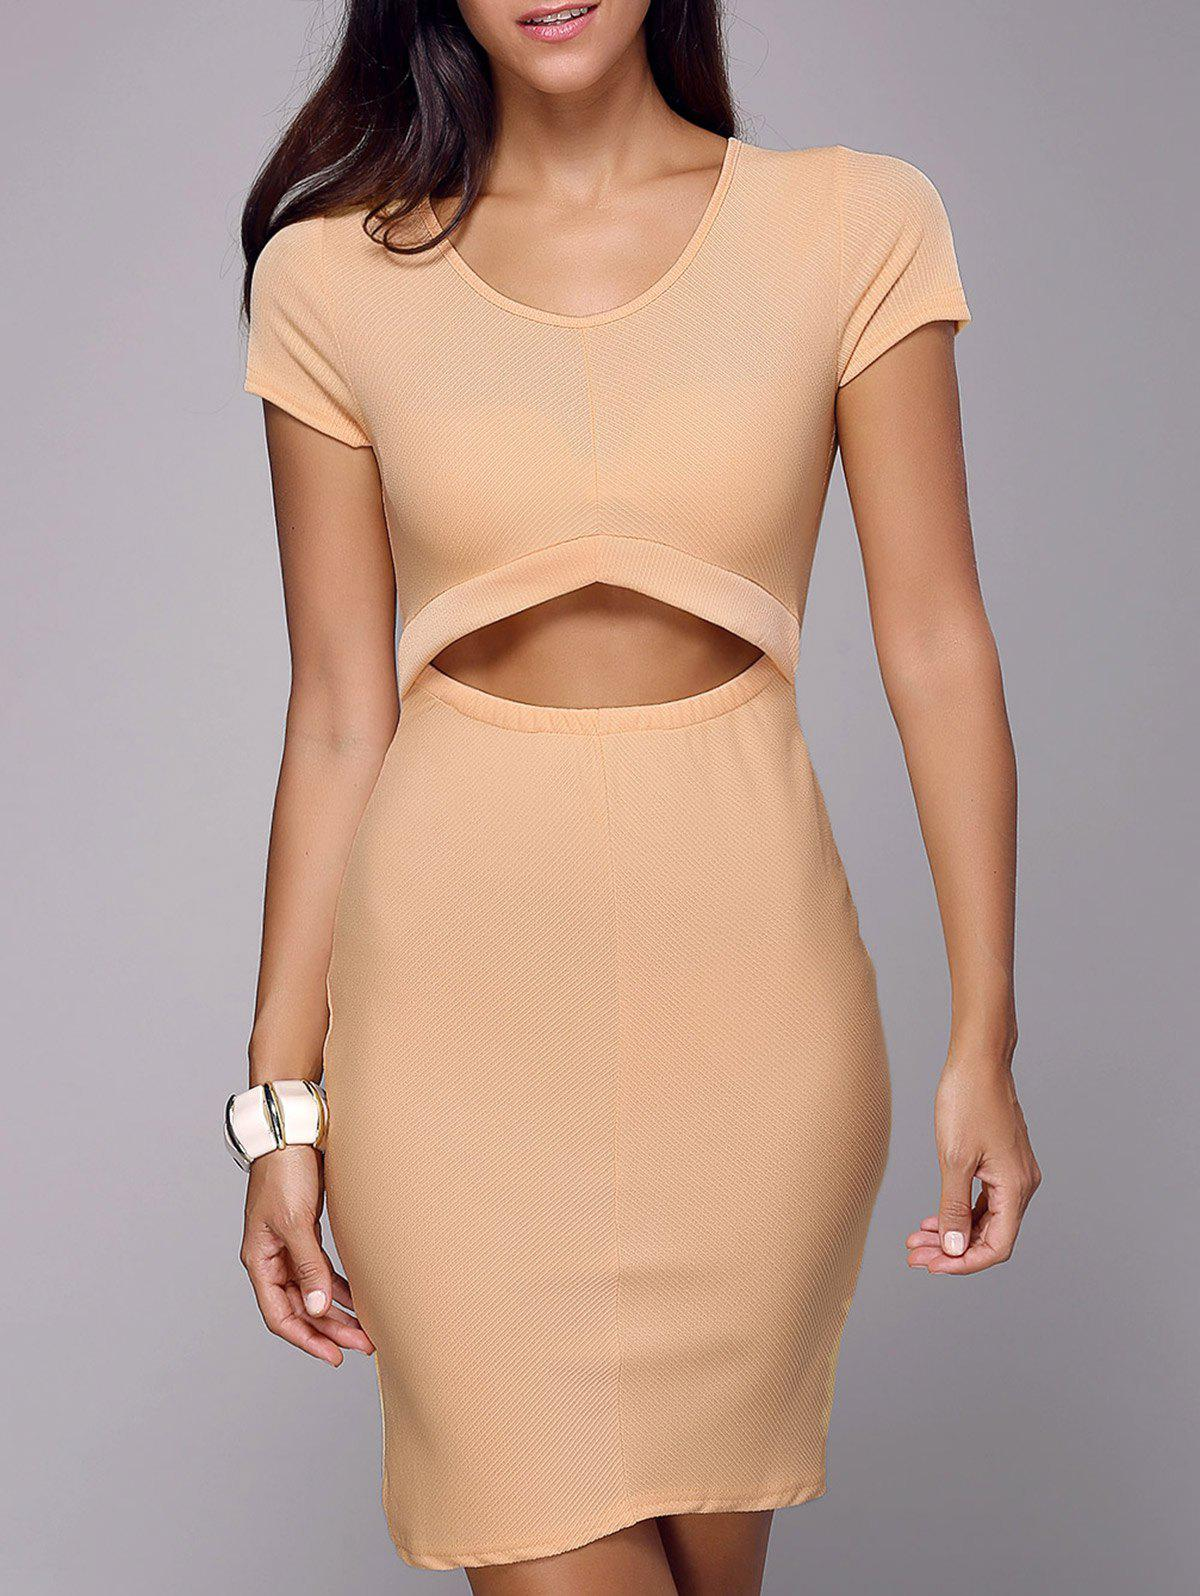 Casual Scoop Neck Short Sleeve Cut Out Slimming Women's Dress